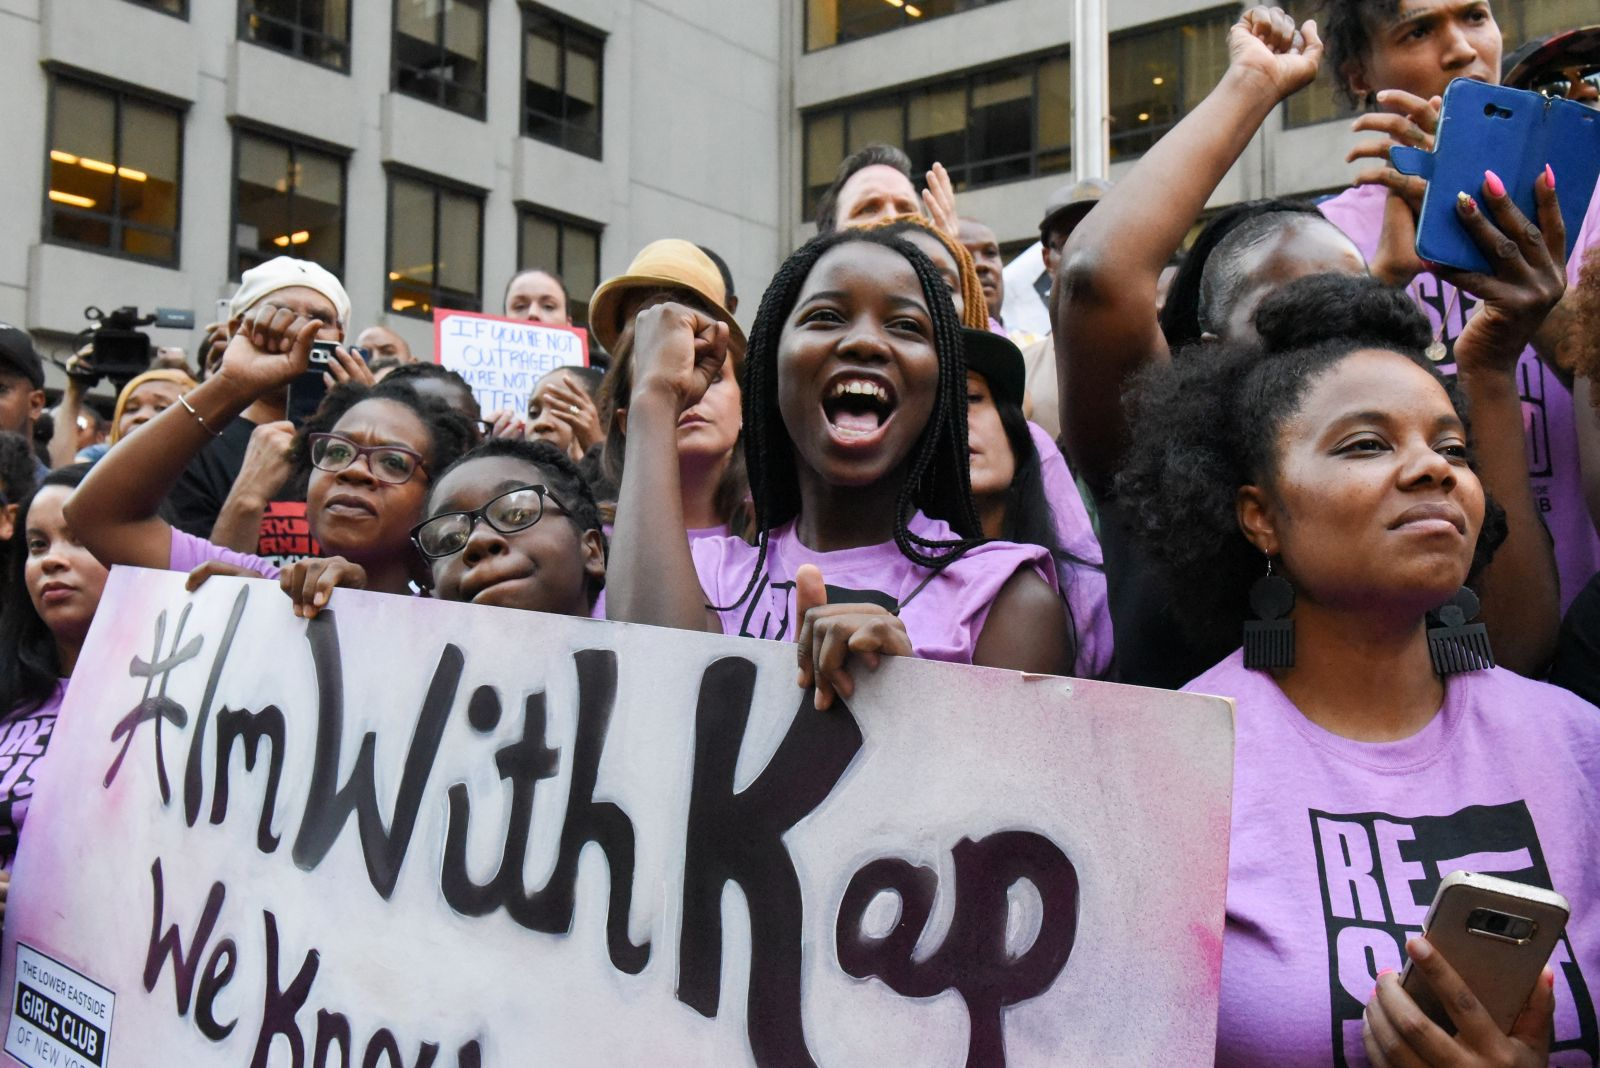 People participate in a protest against the National Football League (NFL) and in support of Colin Kaepernick in New York, NY, U.S. August 23, 2017. REUTERS/Stephanie Keith - RC12CFF85440